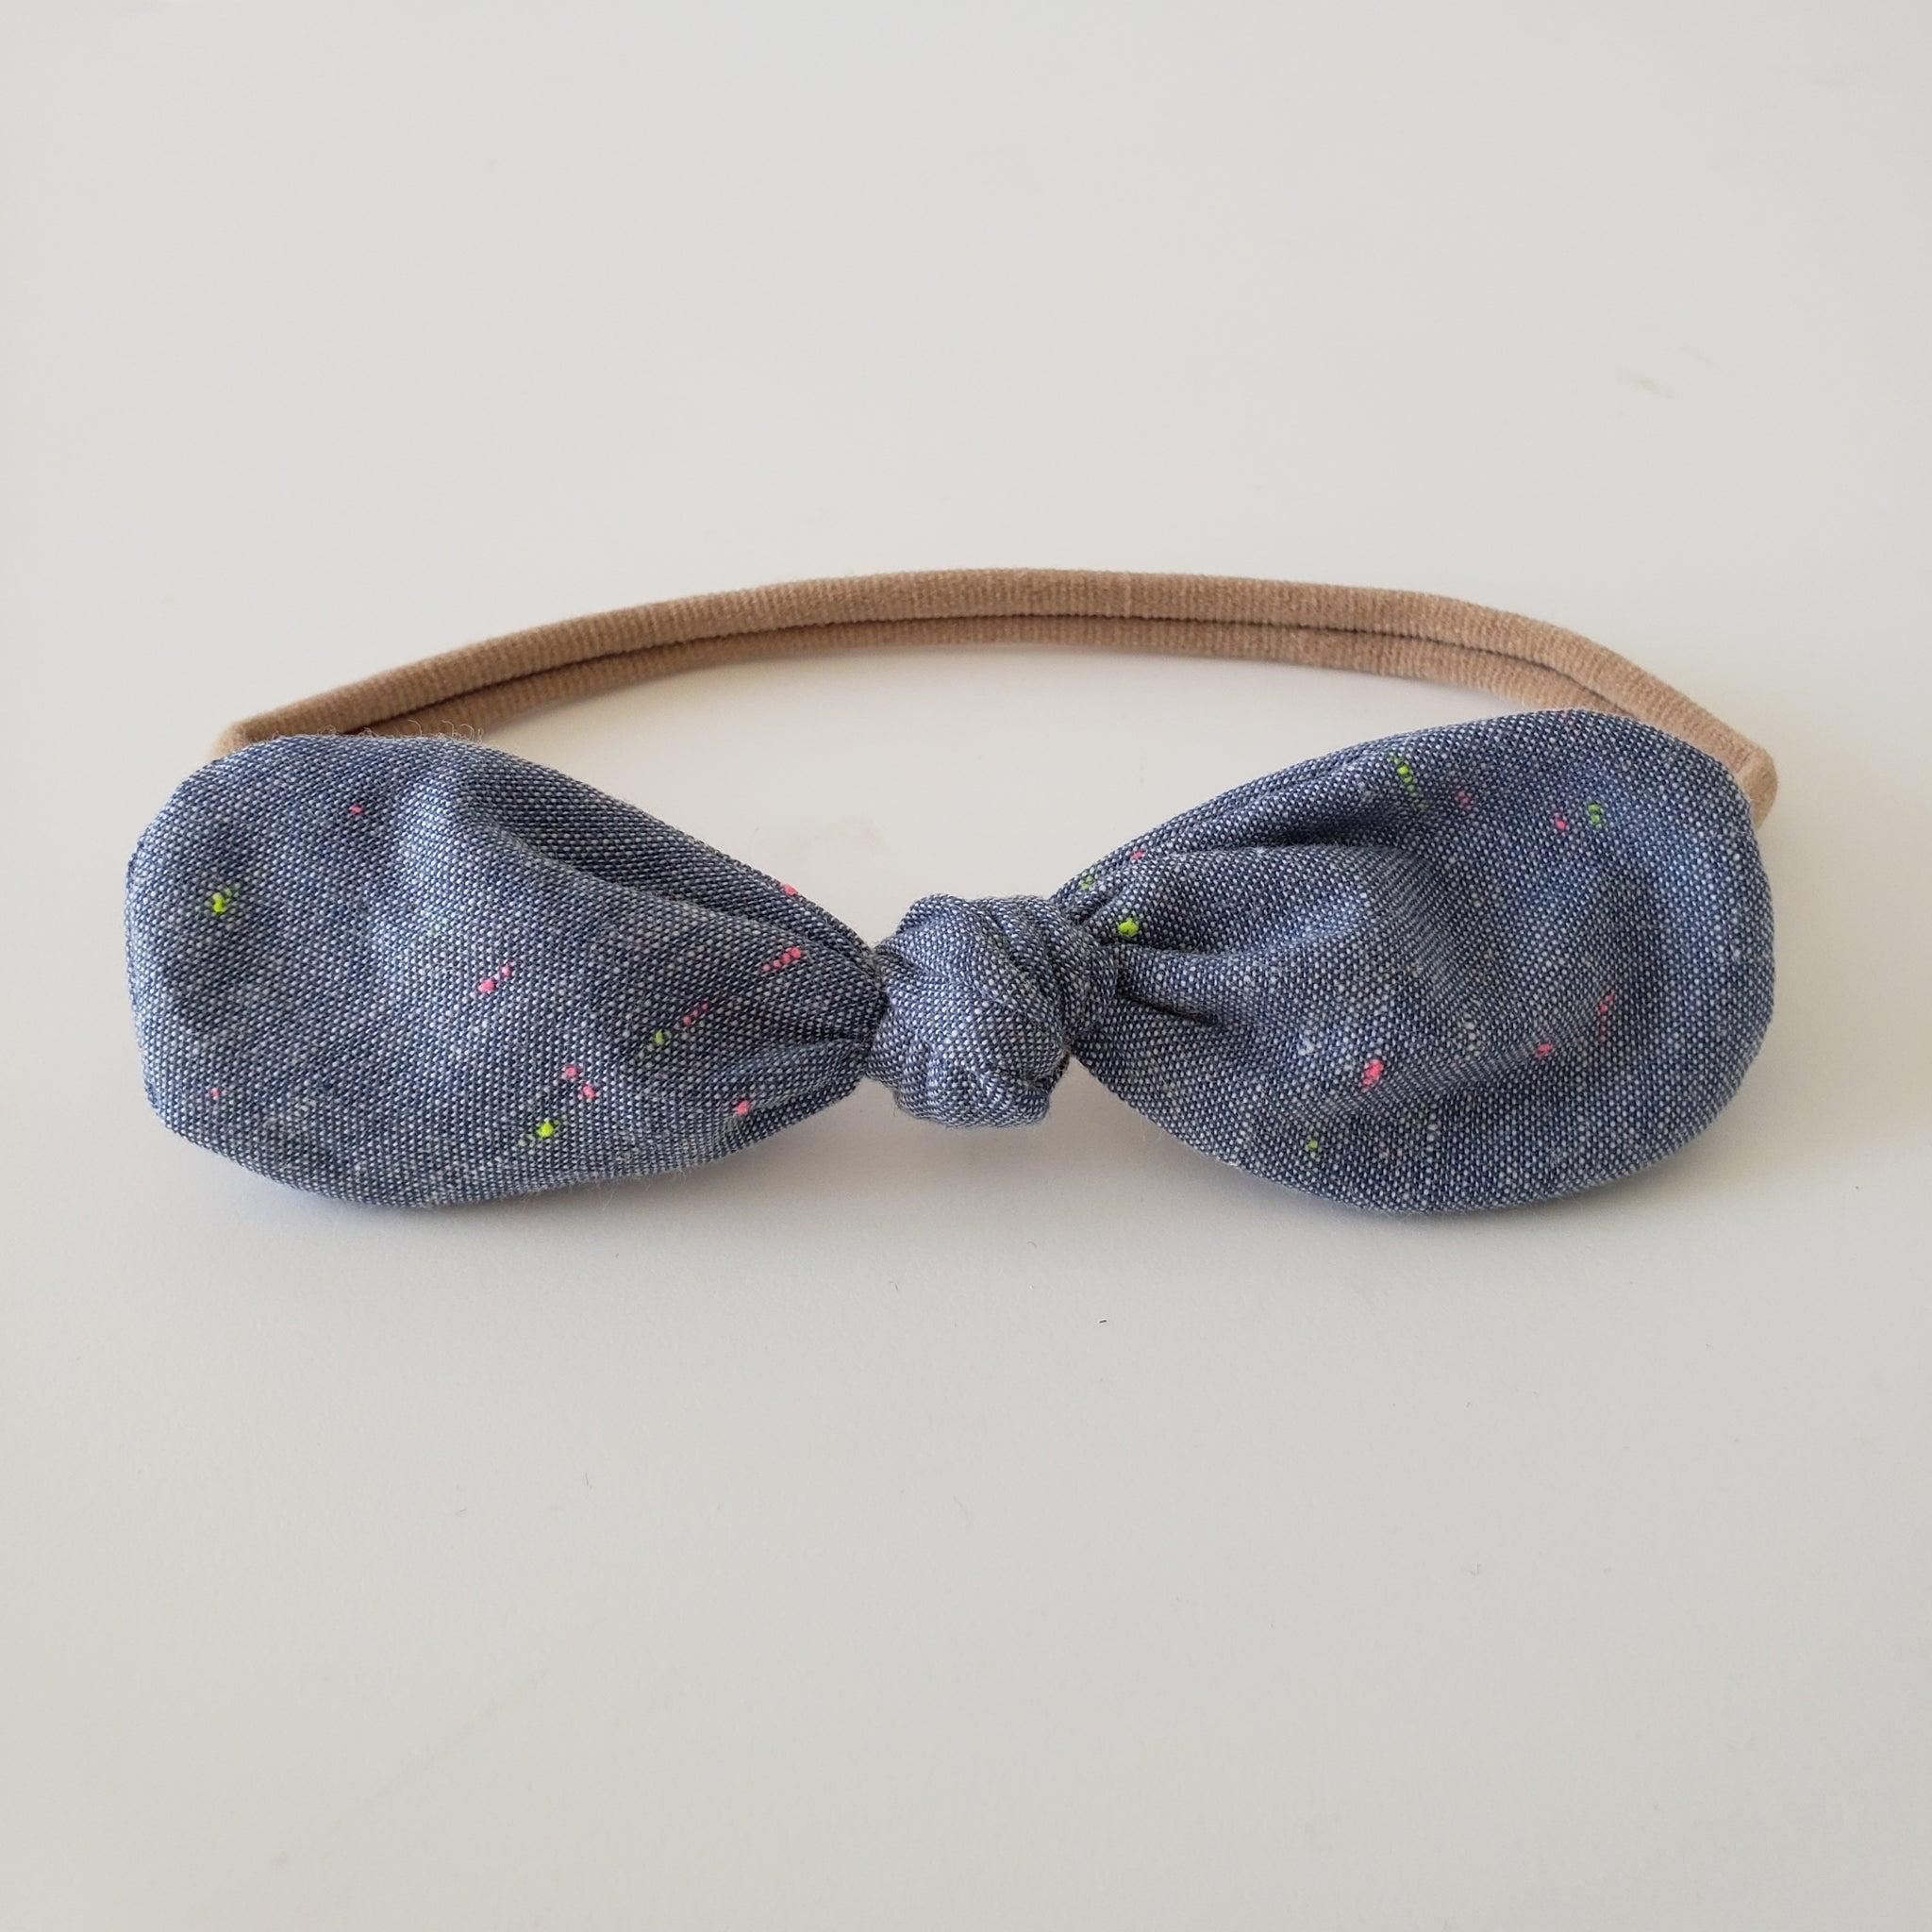 CHILDREN'S BOW HEADBAND - NEON CHAMBRAY